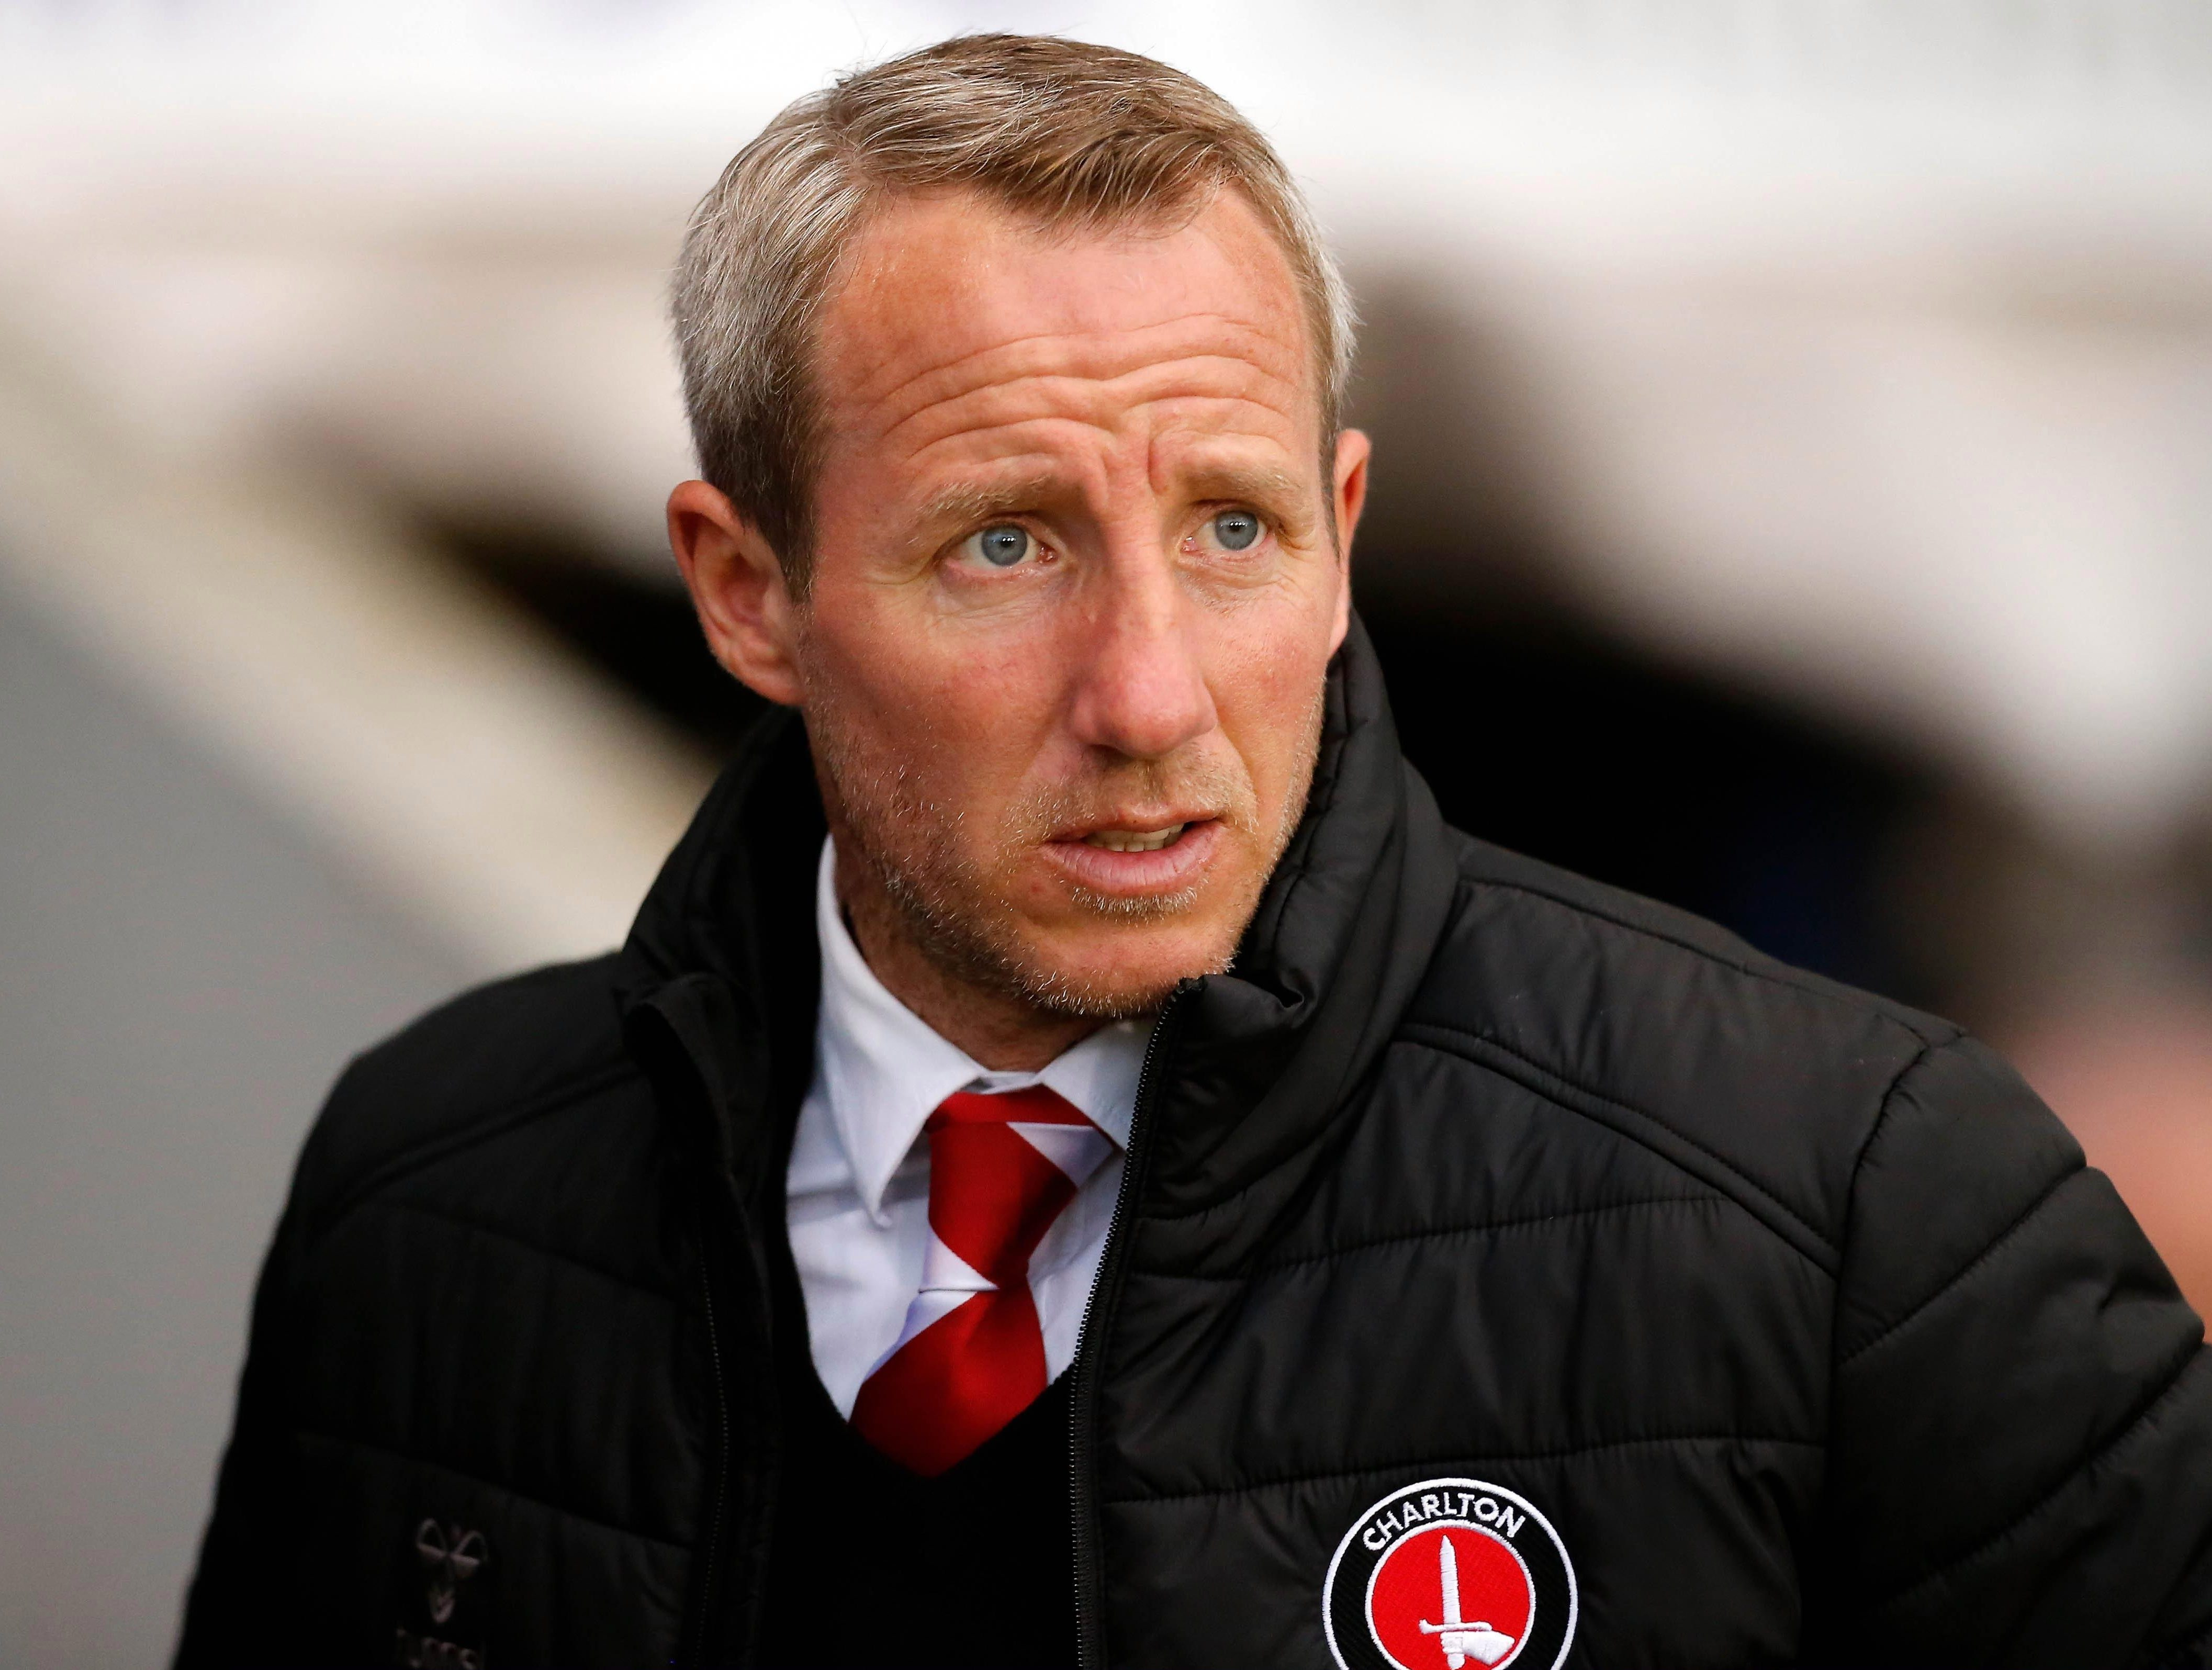 Long-time Premier League viewers will be familiar with Lee Bowyer